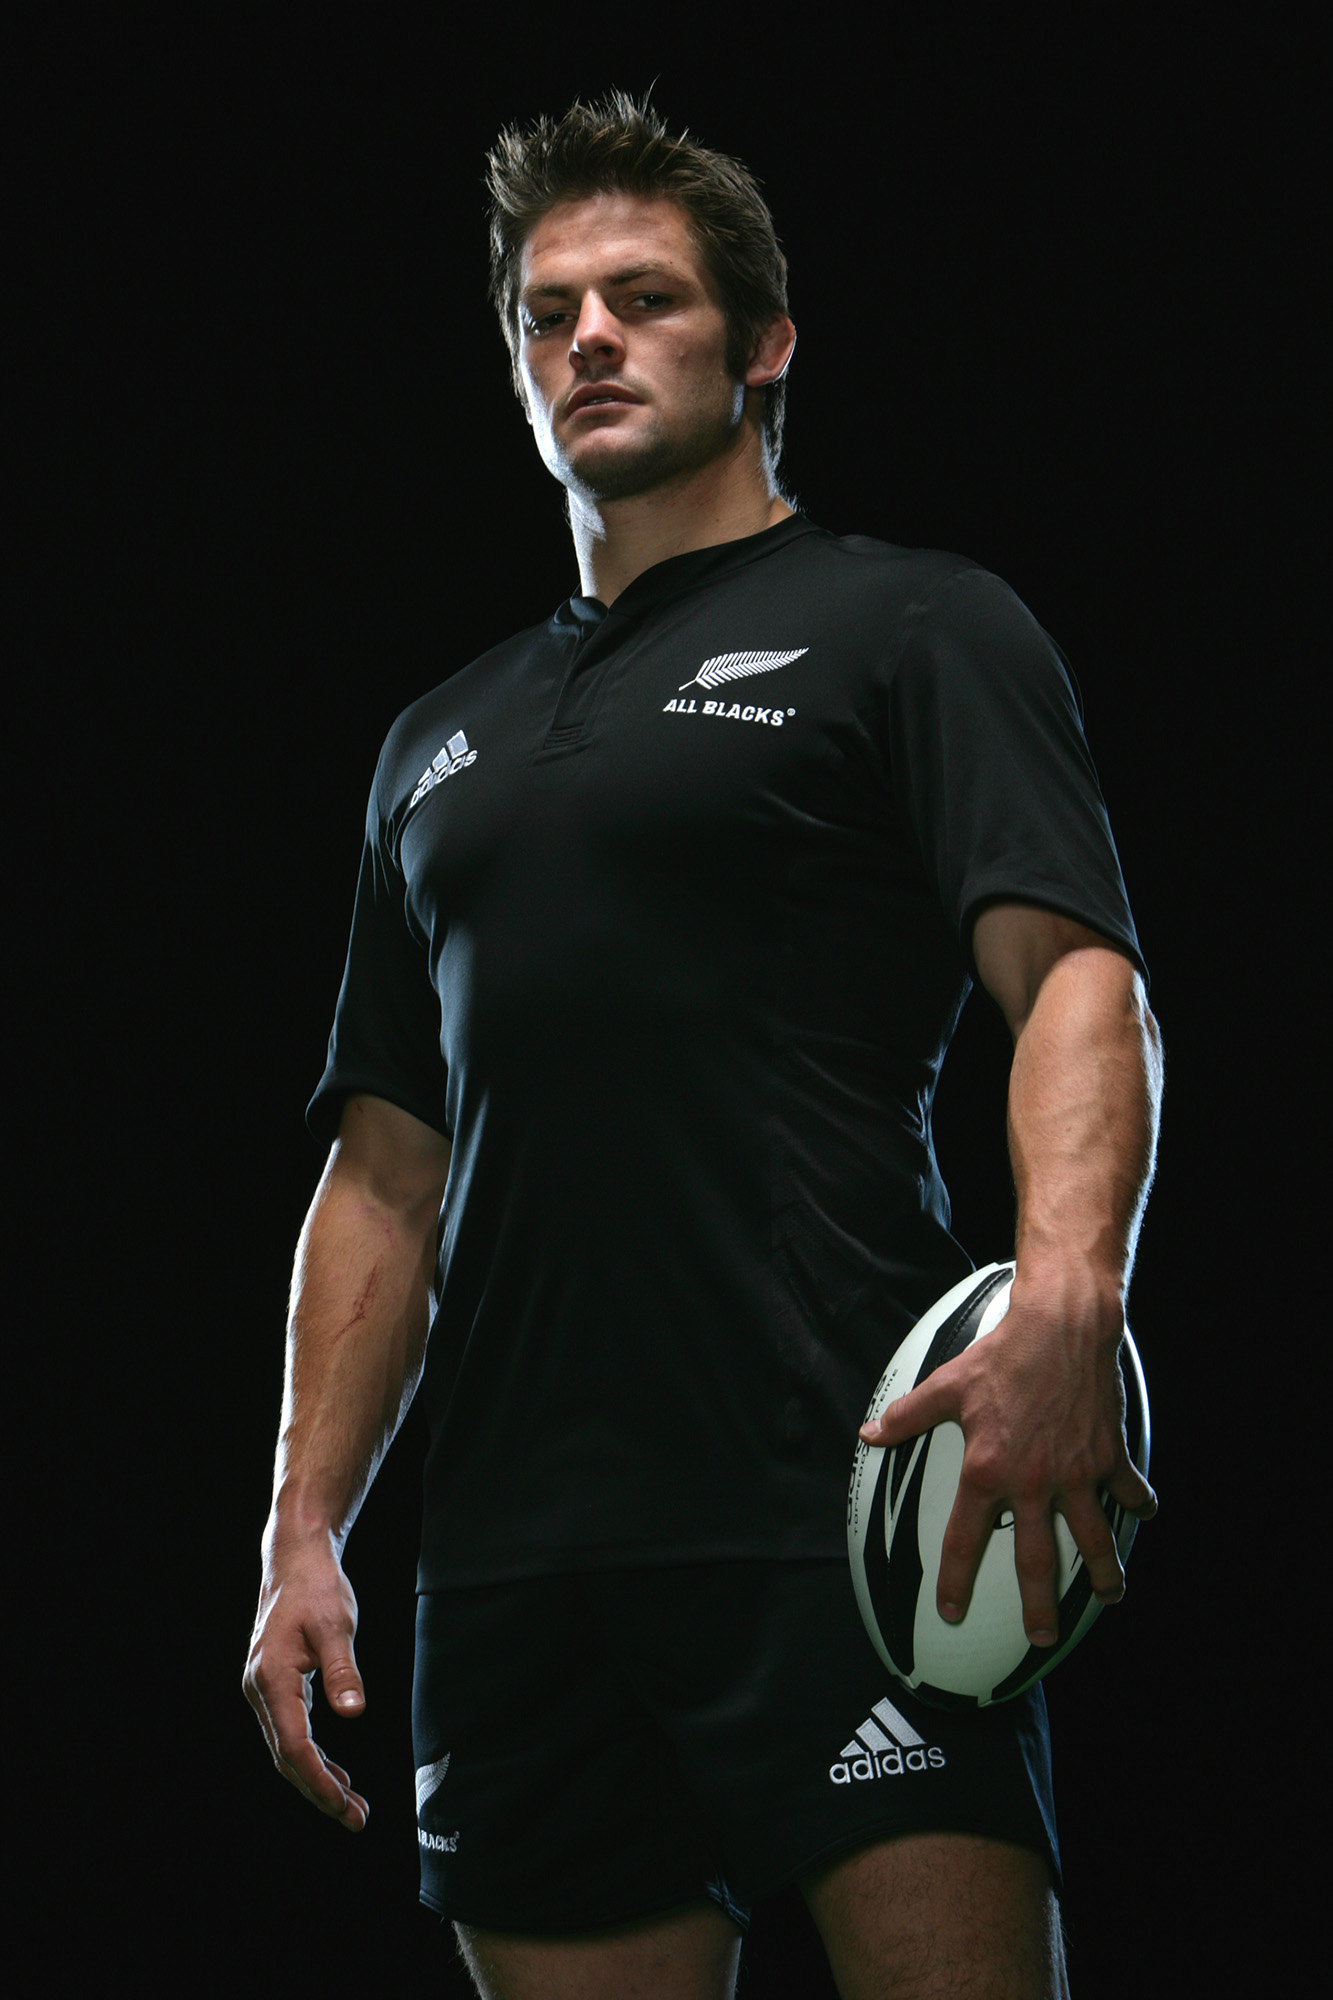 Richie McCaw for adidas